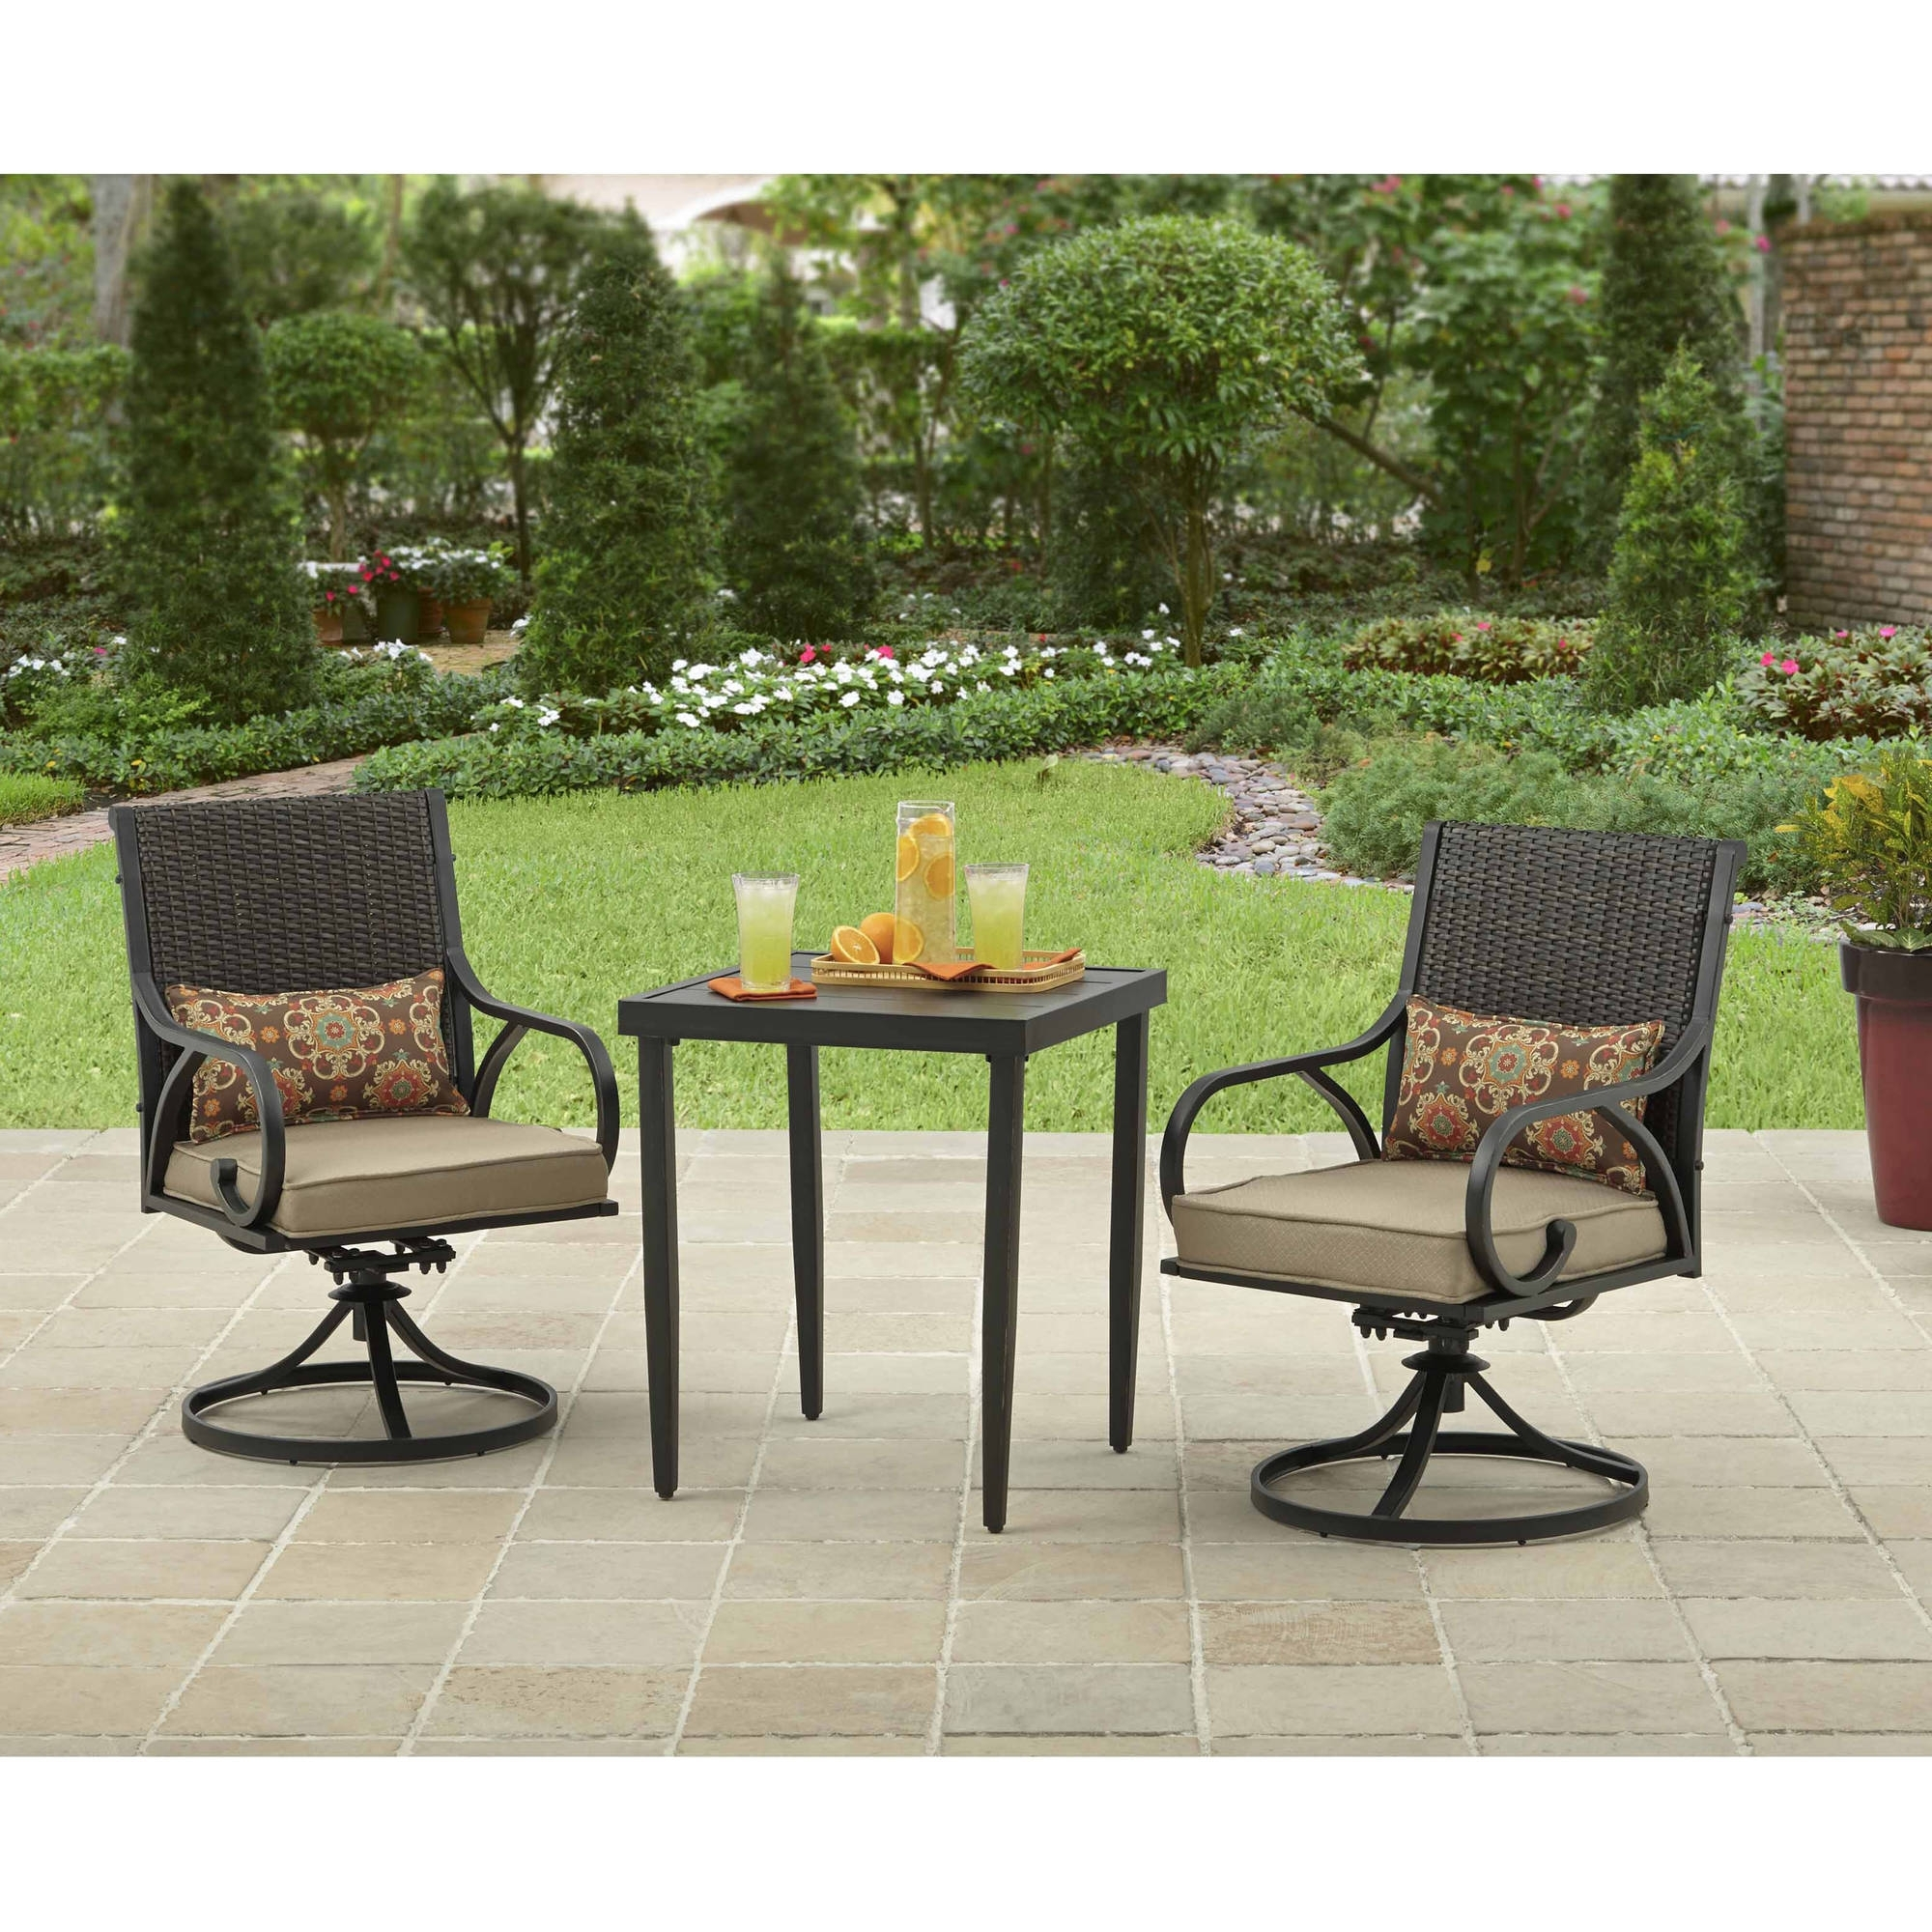 Patio Rocking Chairs And Table For Famous Outdoor Bistro Set 3 Piece Table & Chairs Swivel & Rocker Wicker (View 9 of 20)